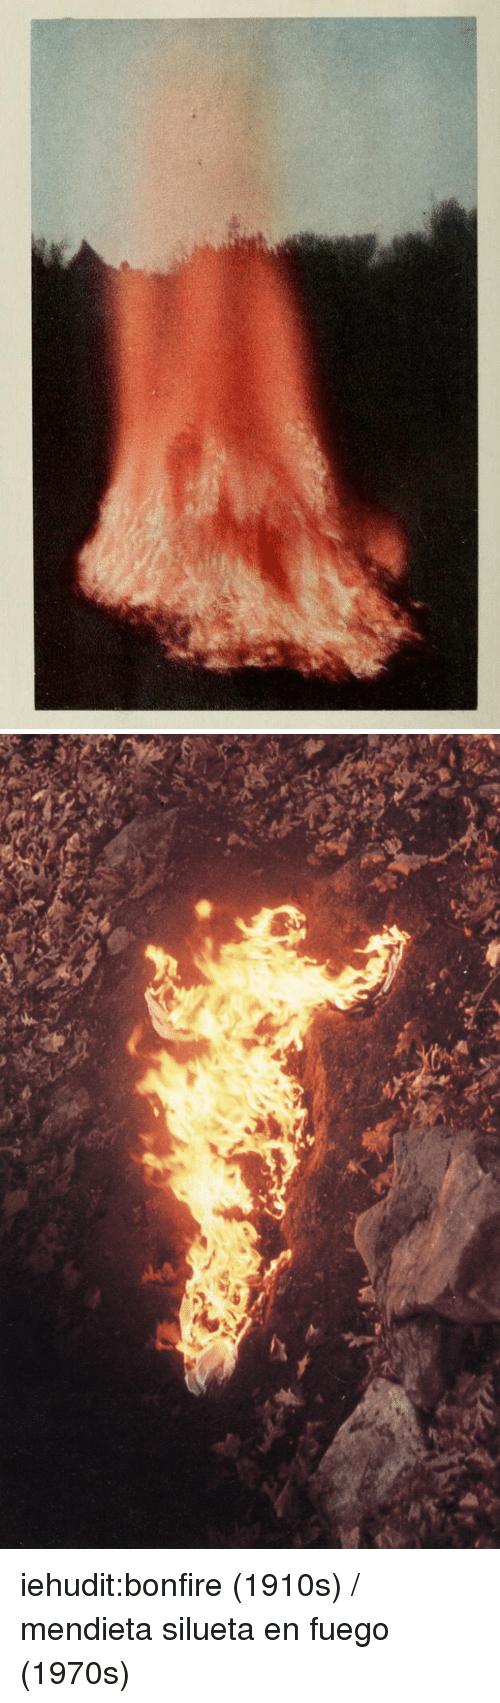 Tumblr, Blog, and Http: iehudit:bonfire (1910s) / mendieta silueta en fuego (1970s)